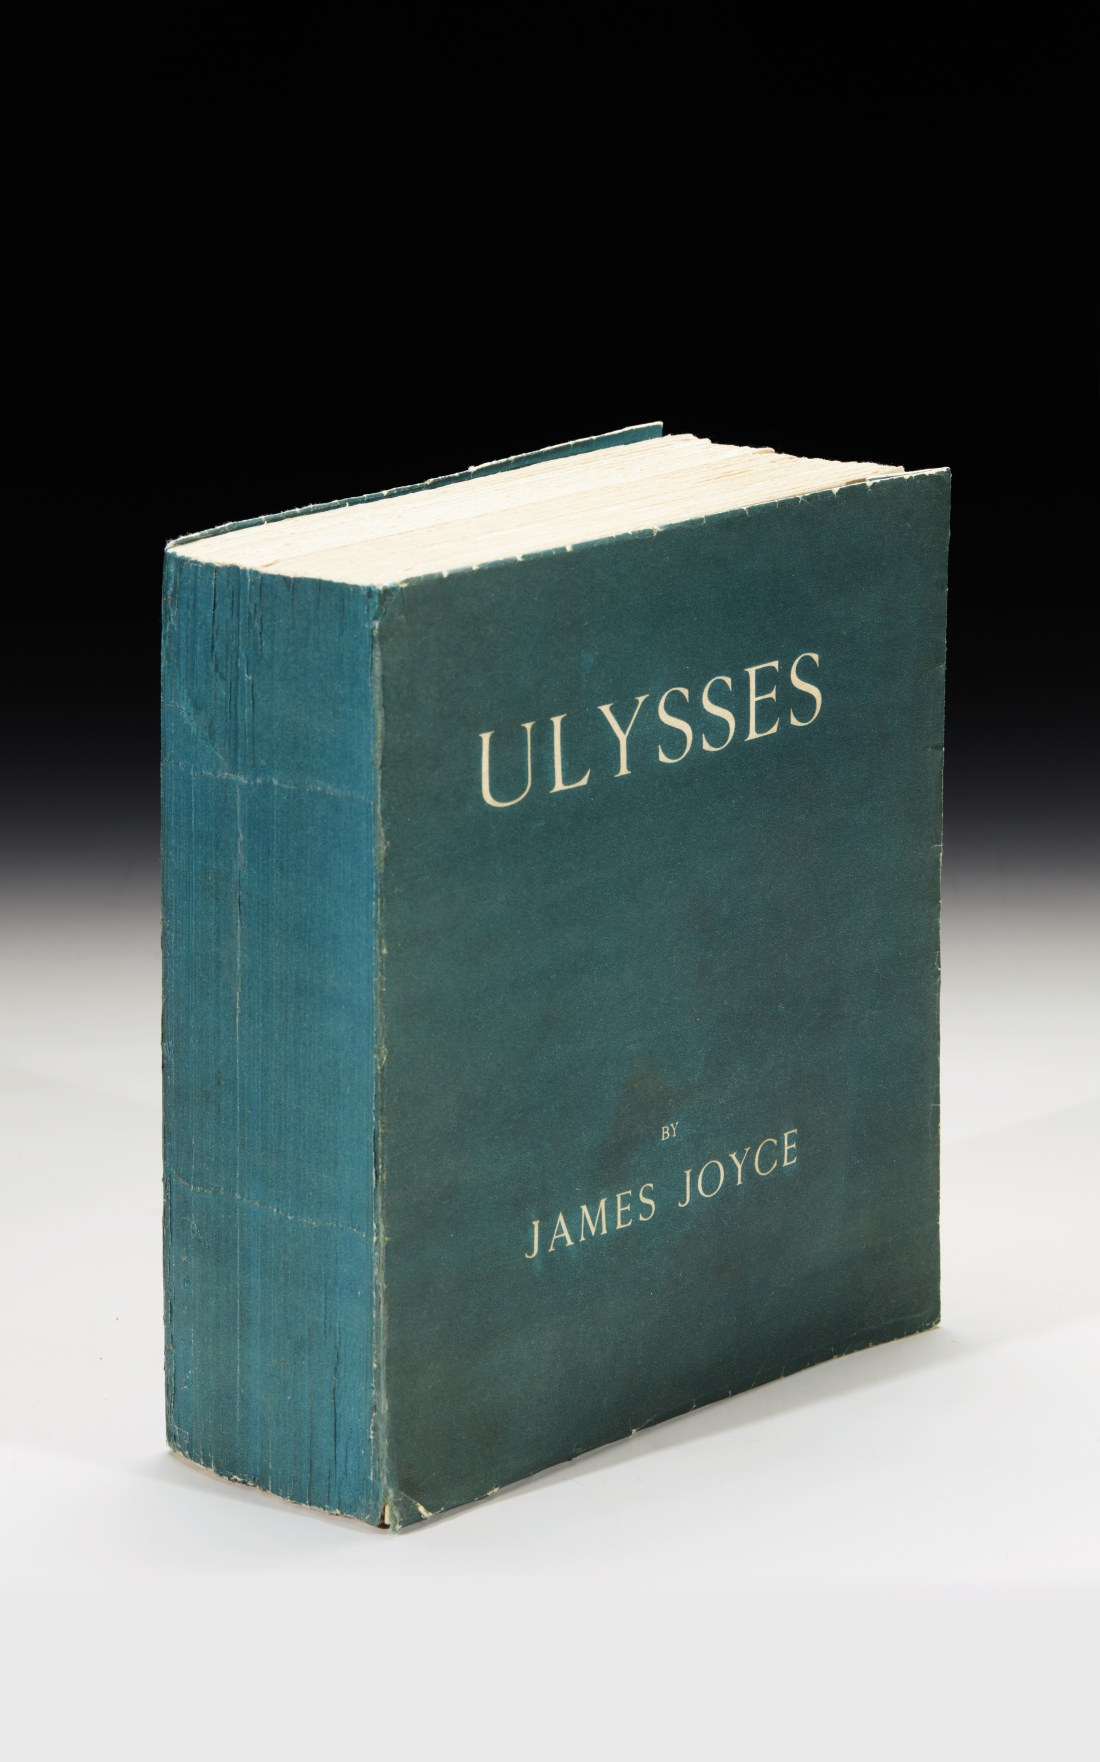 A first edition copy of James Joyce's Ulysses from the 1/100 series of the run of 1,000, which is signed by the author.